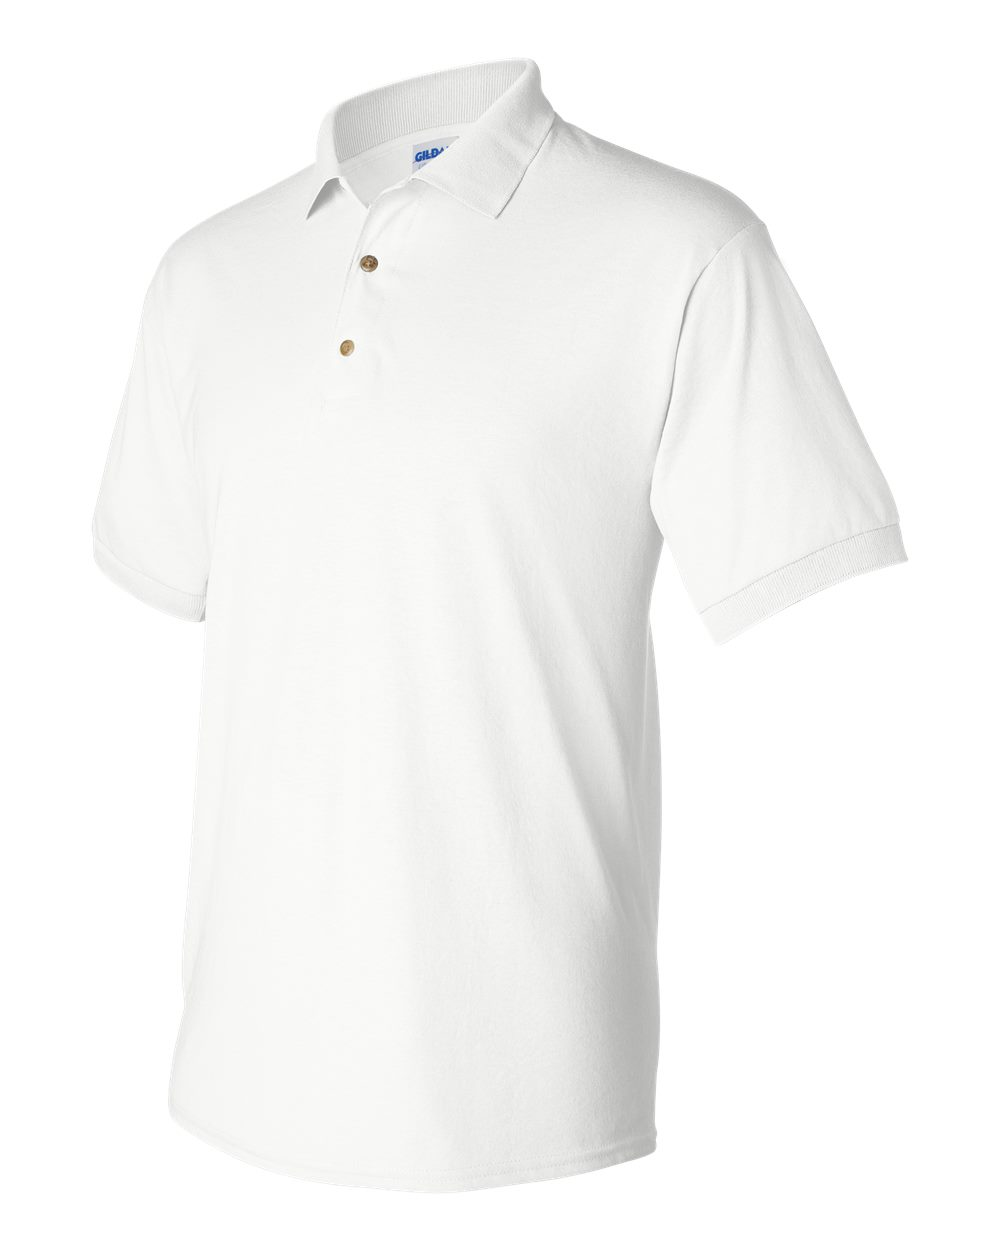 Clearance White Oak White Polo